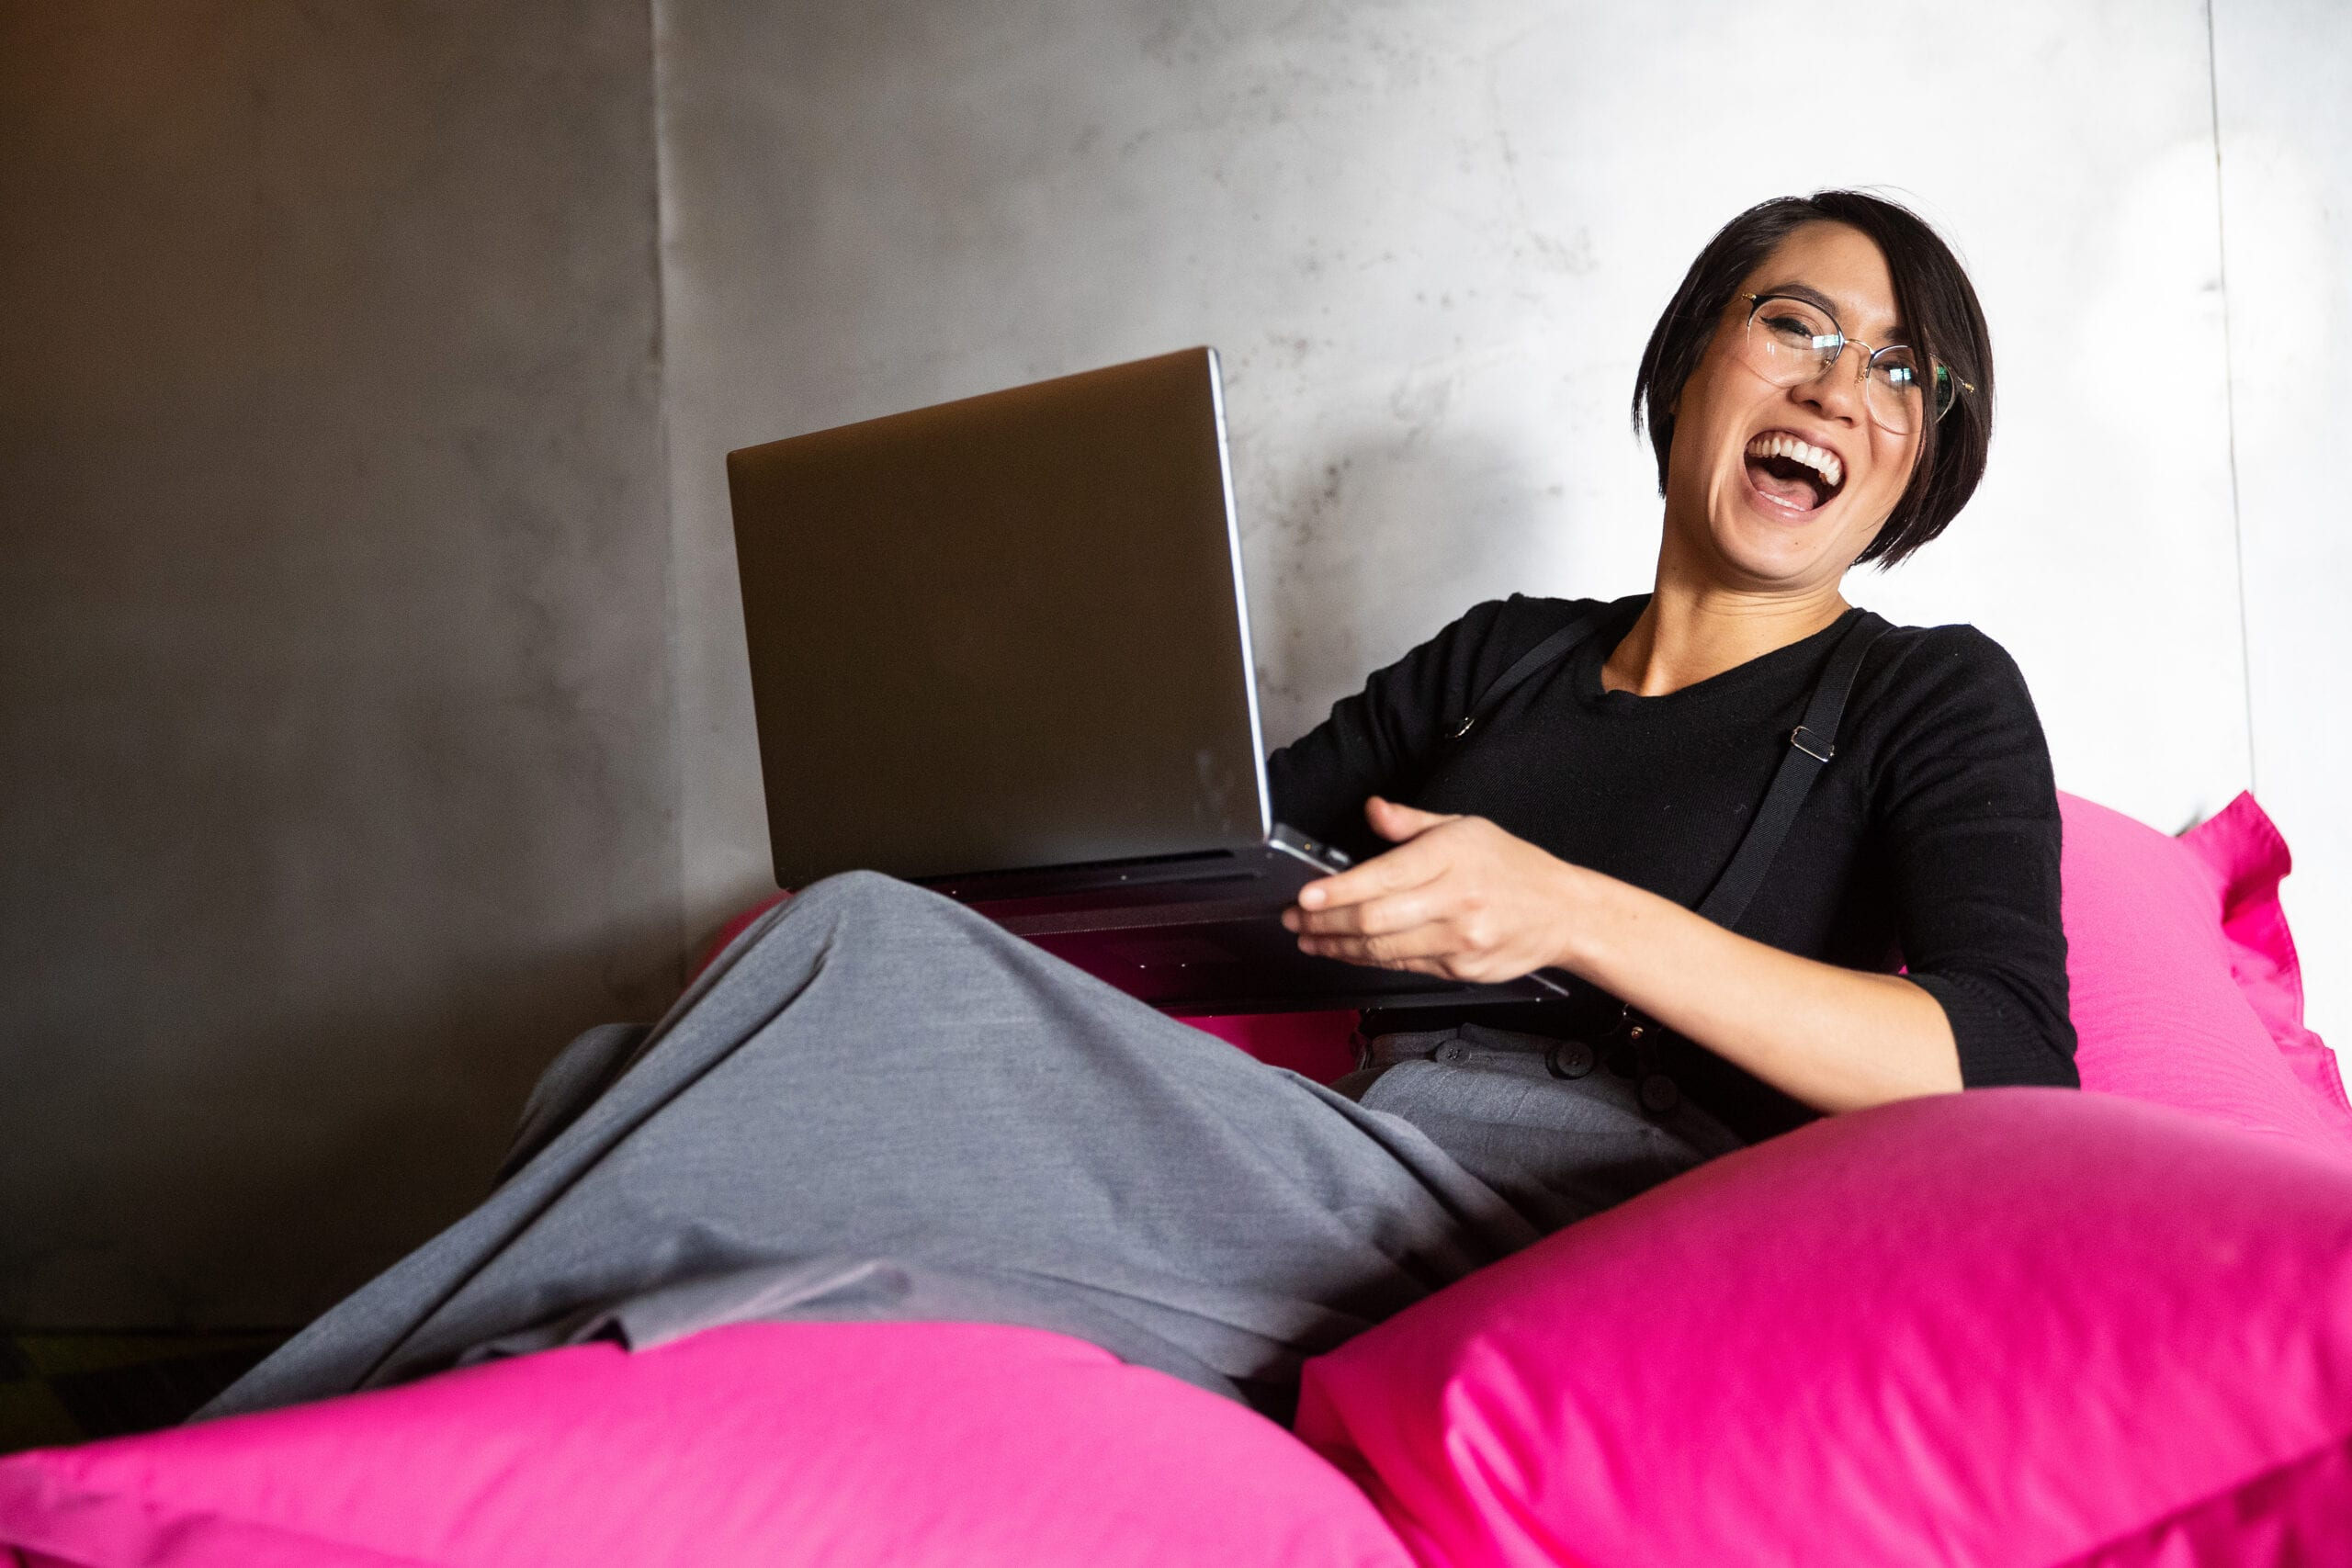 Pretty Asian woman working on laptop while sitting on beanbag chair in office